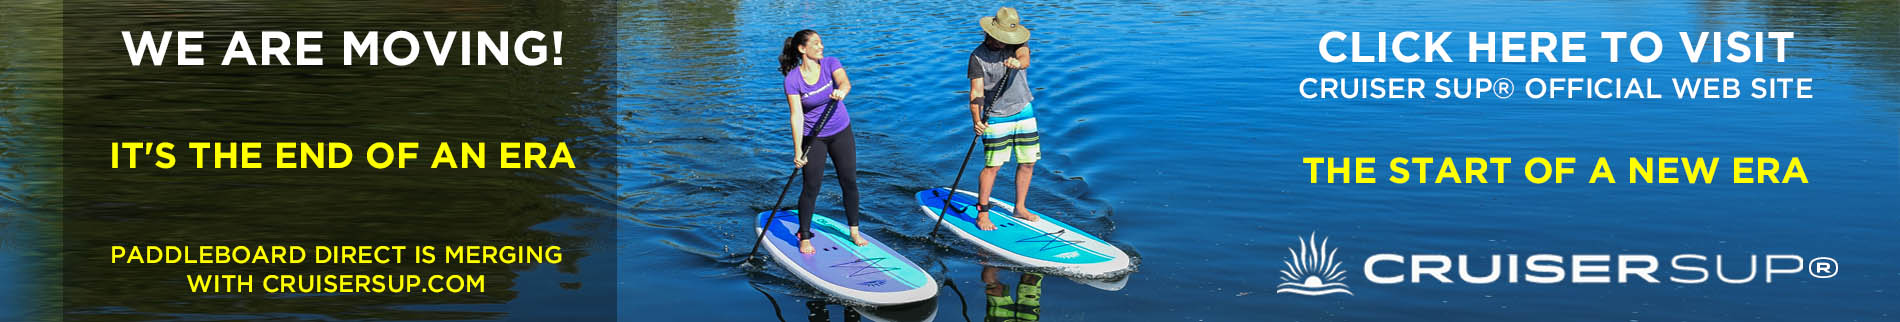 Family Stand Up Paddle Board Package | Clearance Sale